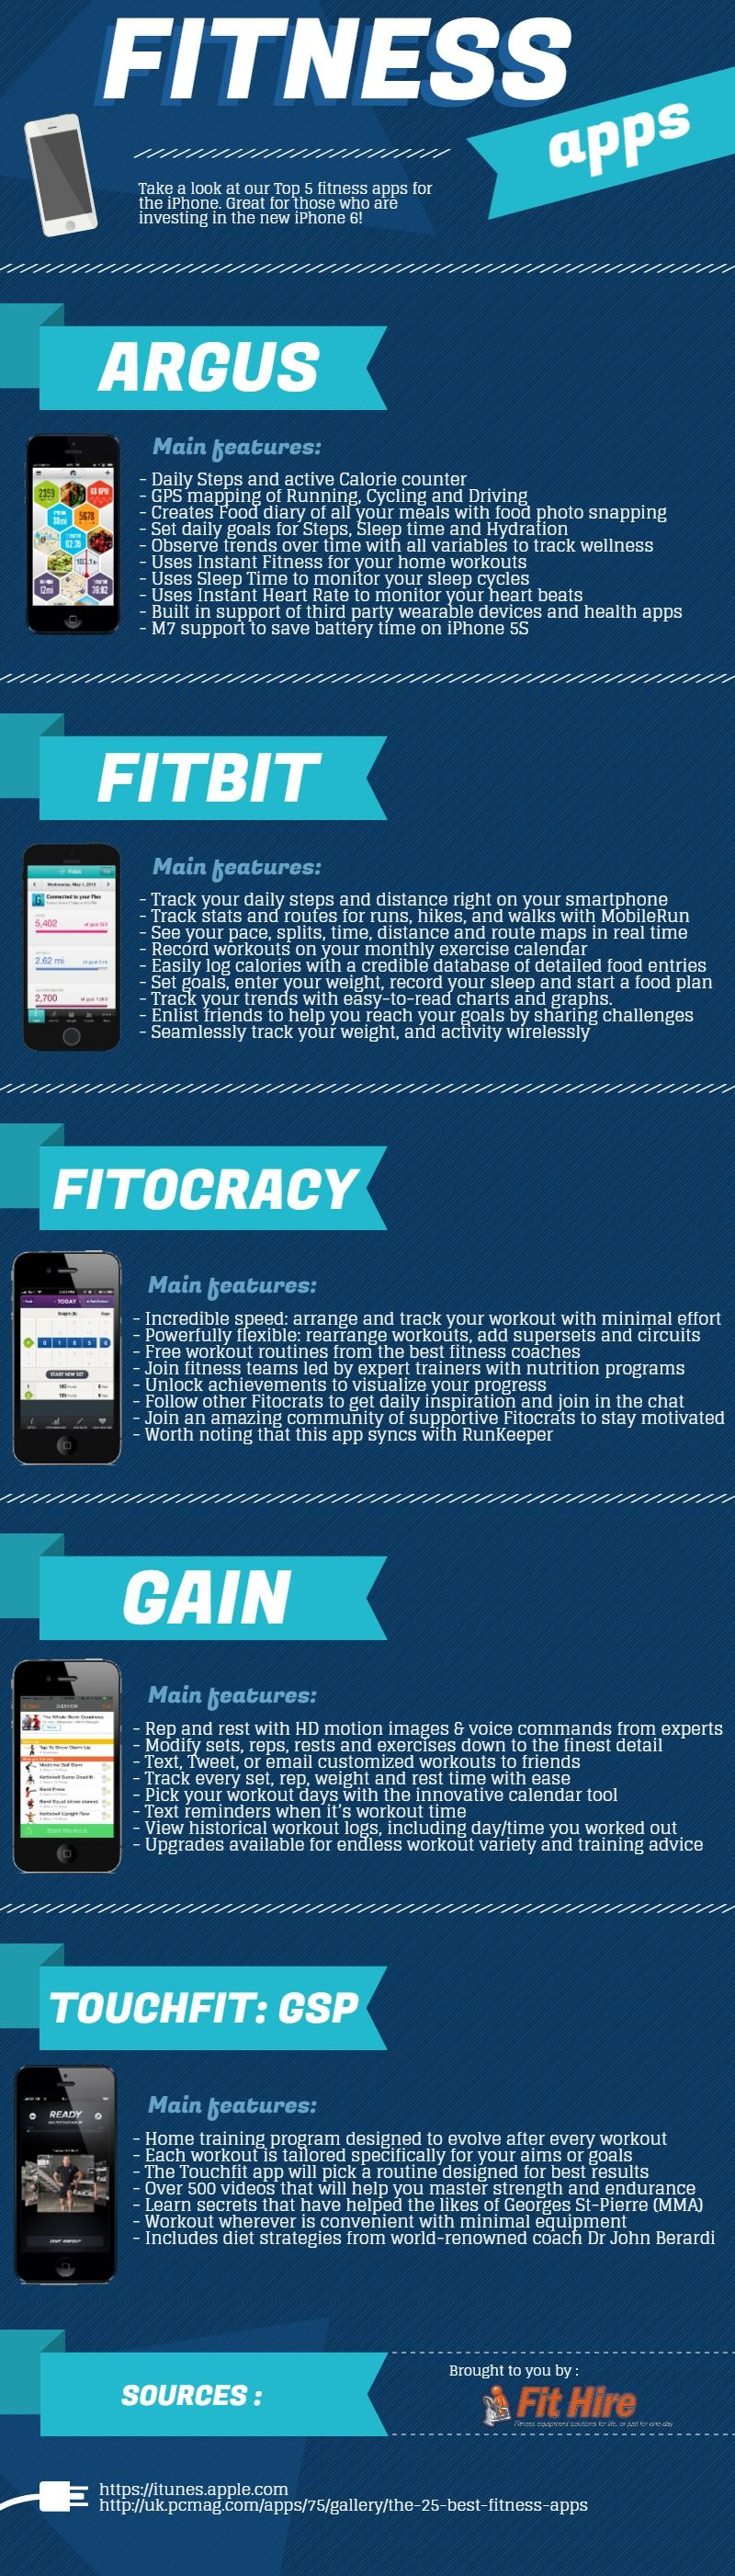 Fitness Apps infographic Workout apps, Best workout